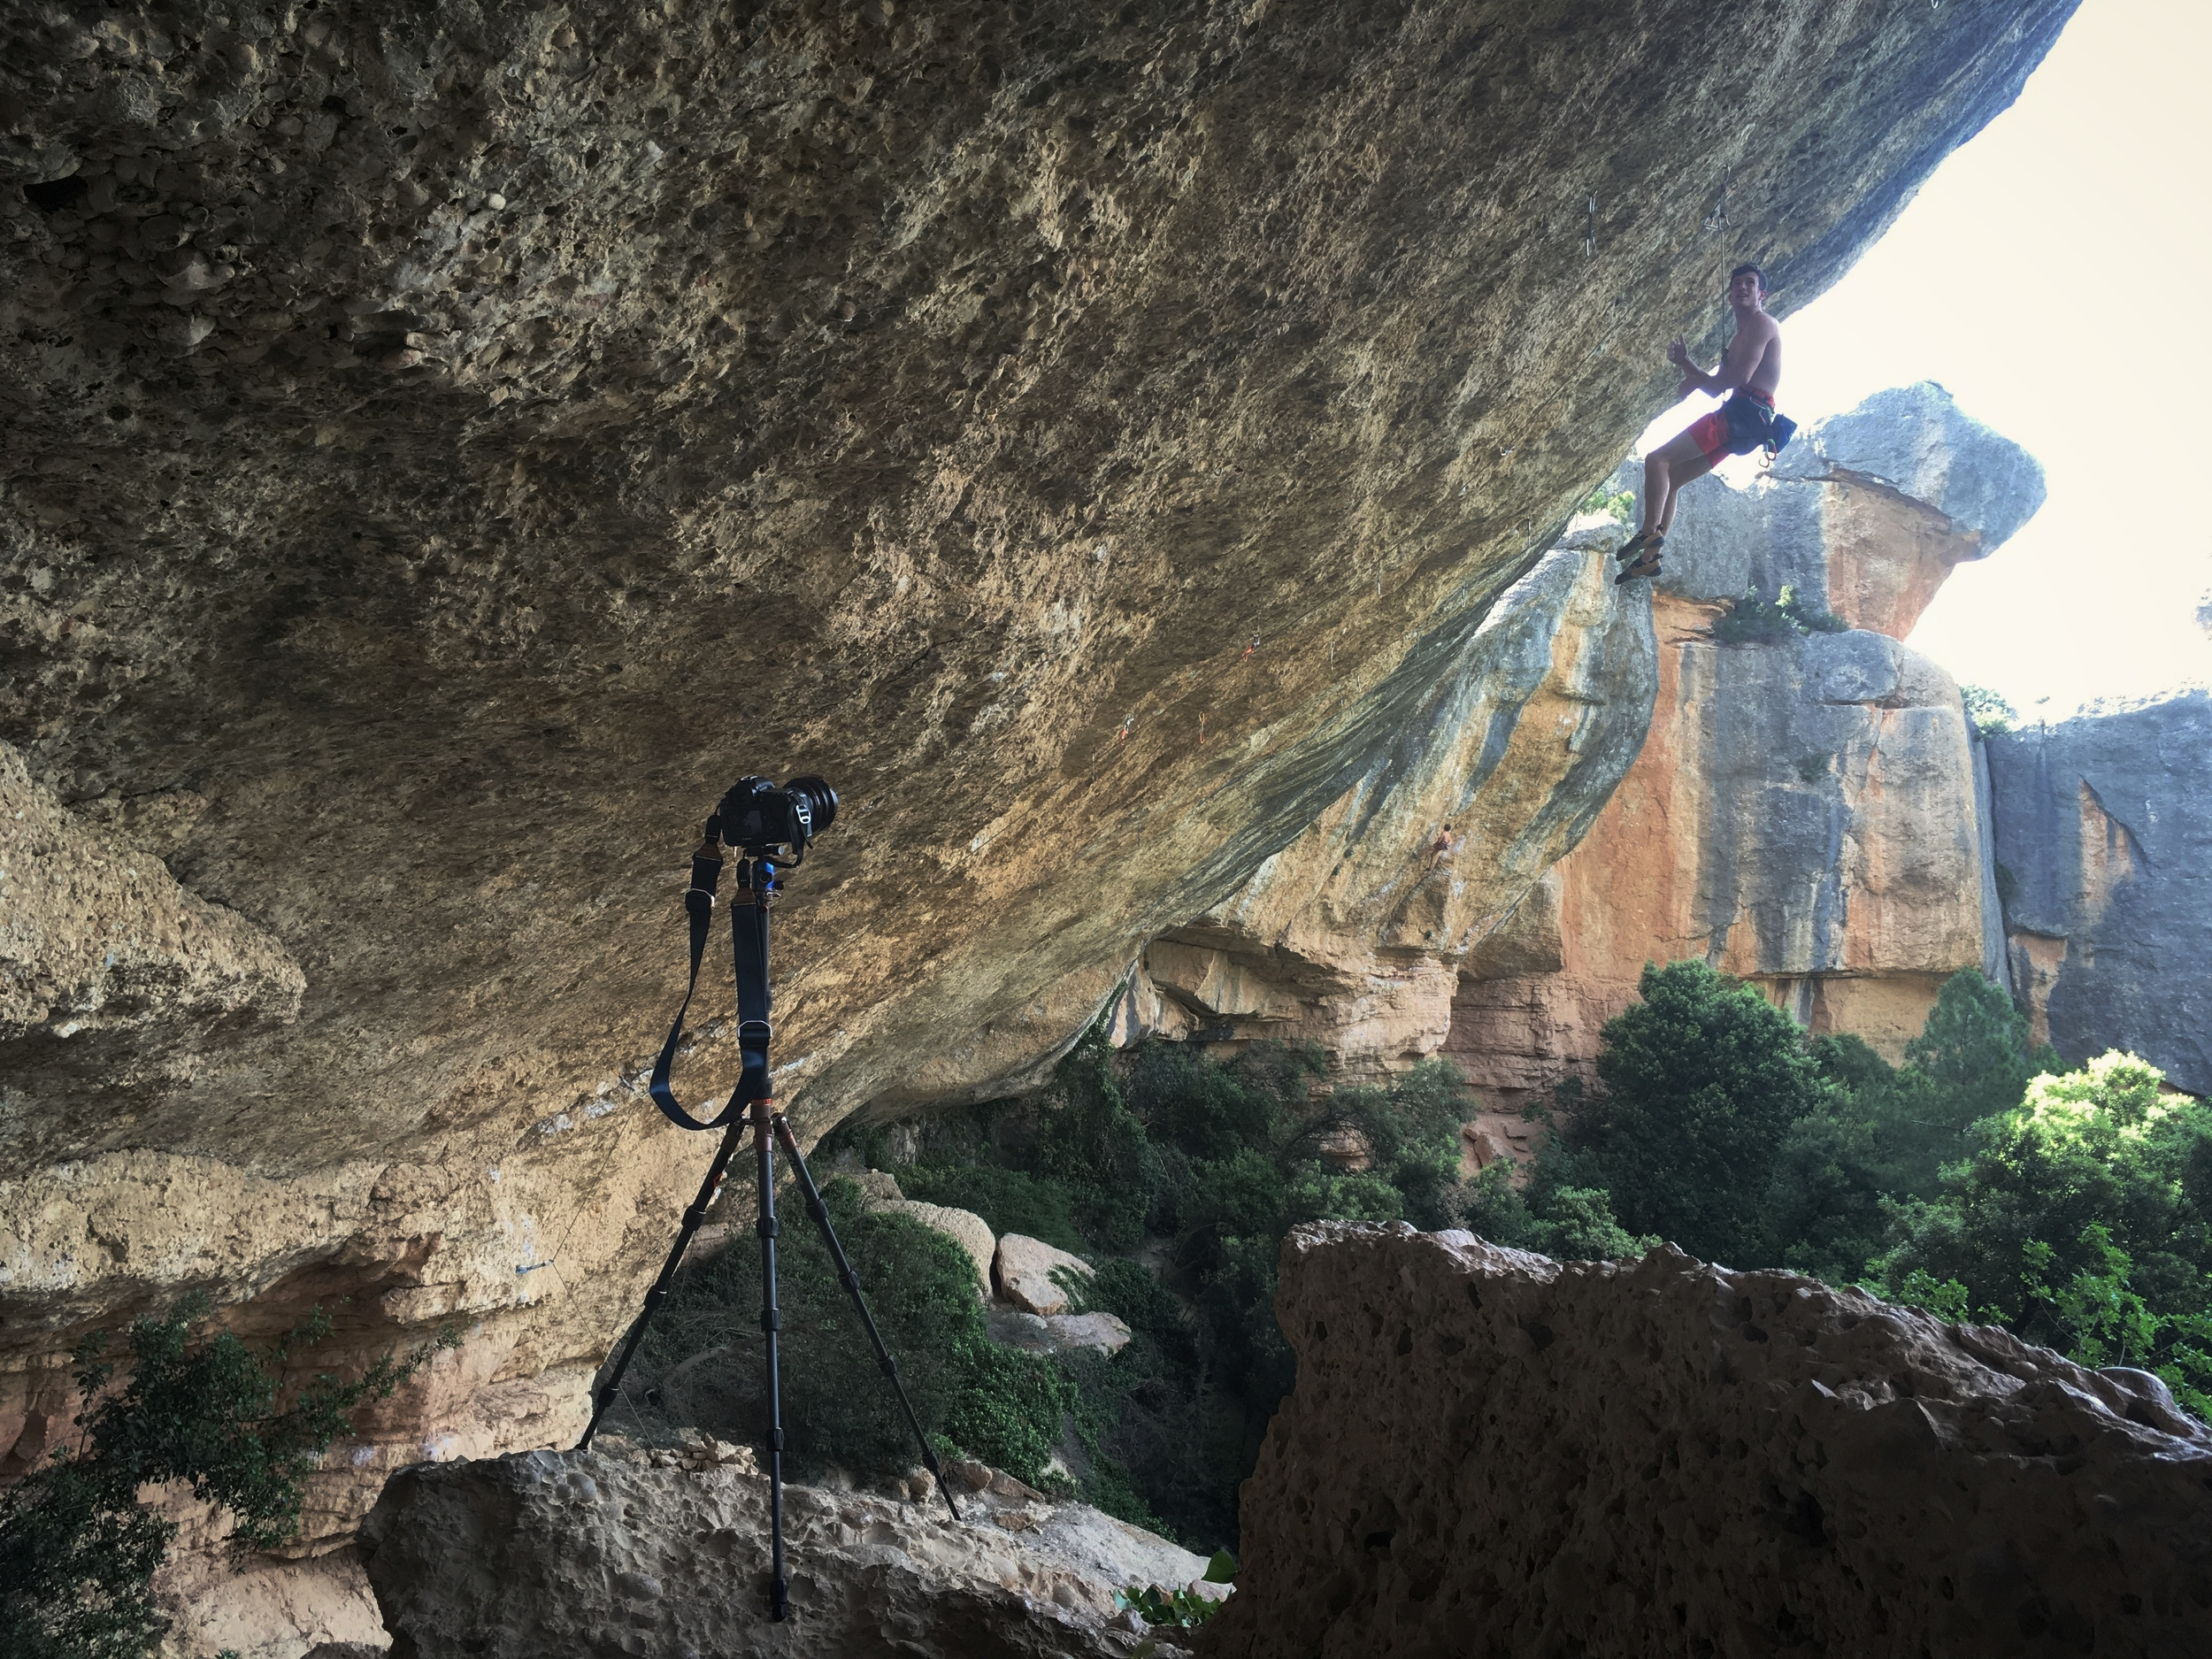 Rick on the job in Margalef, Catalunya // L Lonsdale ©